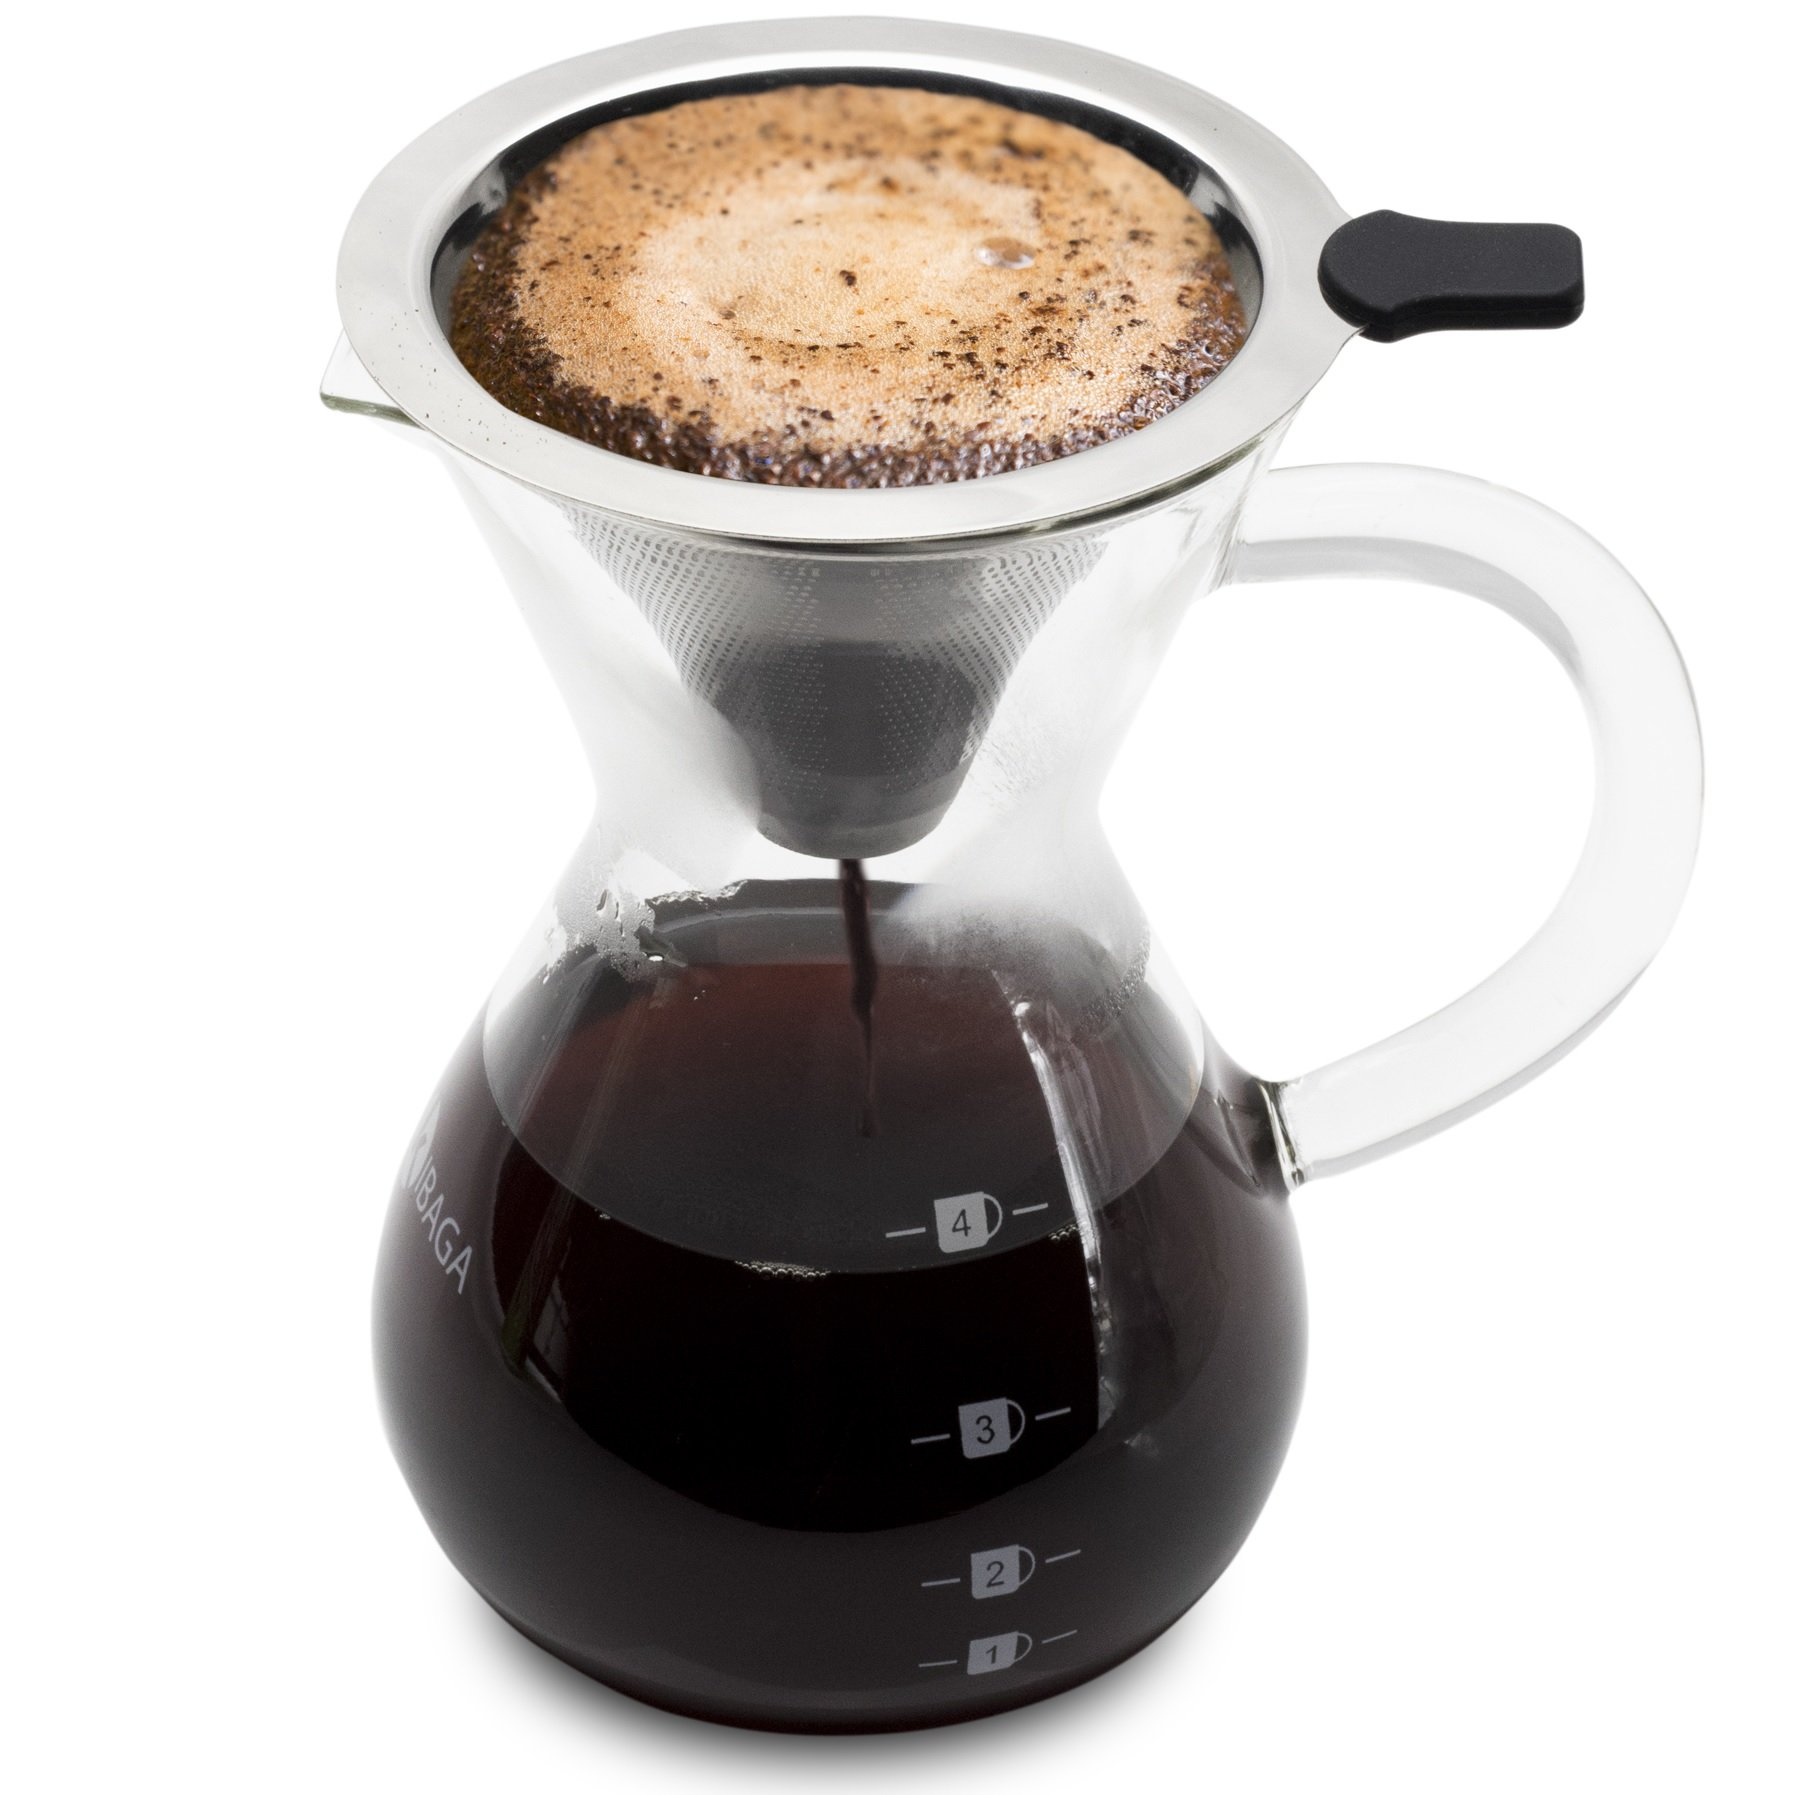 Premium Pour Over Coffee Dripper Set With Classy 14 Oz Glass Carafe - Stainless Steel Pour Over Coffee Maker/Reusable Coffee Filter Guarantees Bolder Flavors & The Best Coffee Experience by KIBAGA